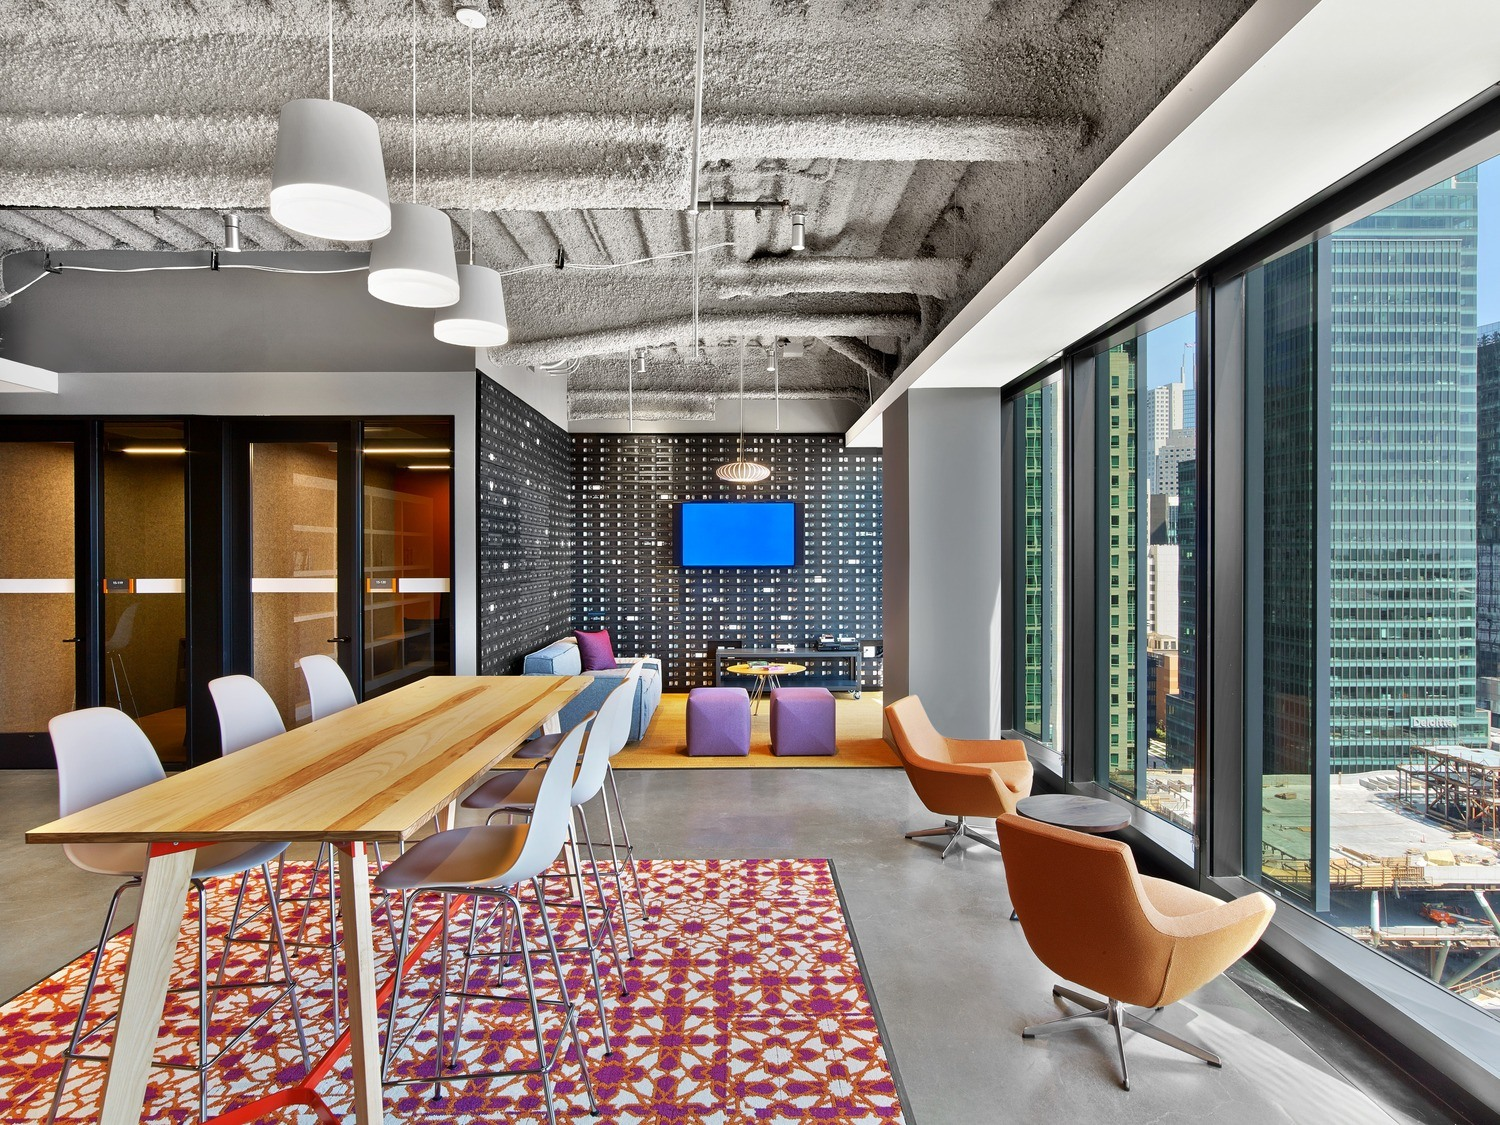 LinkedIn San Francisco's LEED certified offices